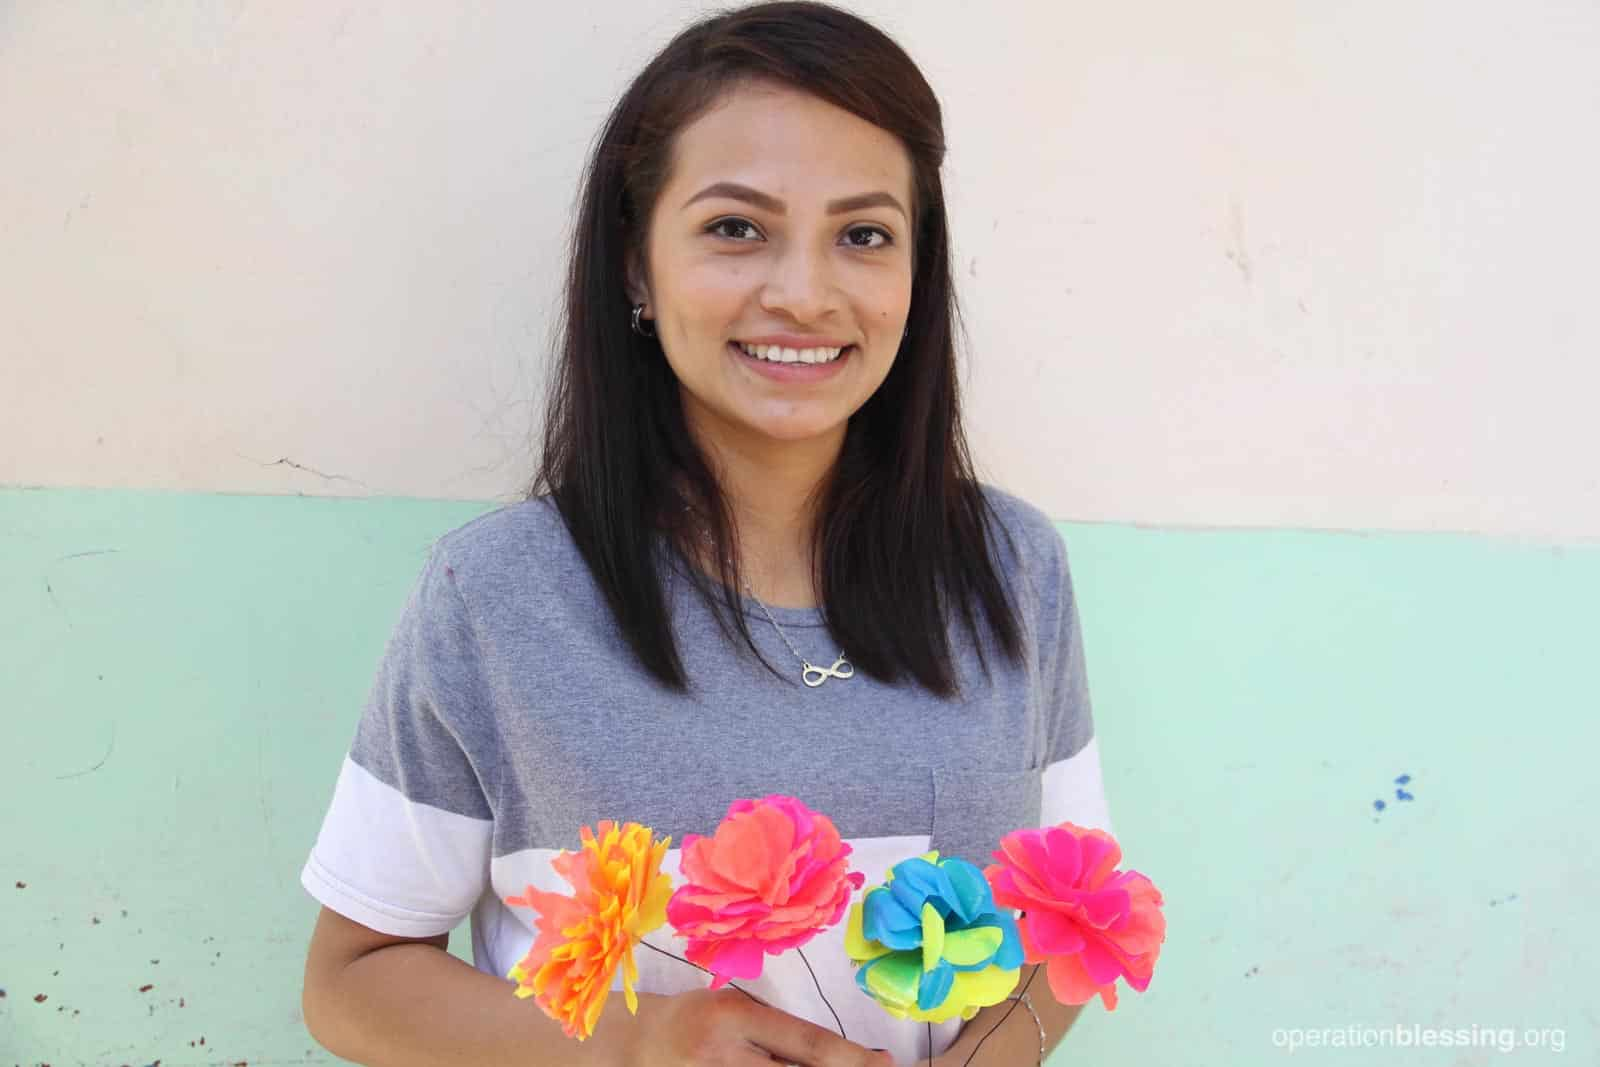 Maria holds colorful paper flowers she learned to make. This opportunity has given her a new life.